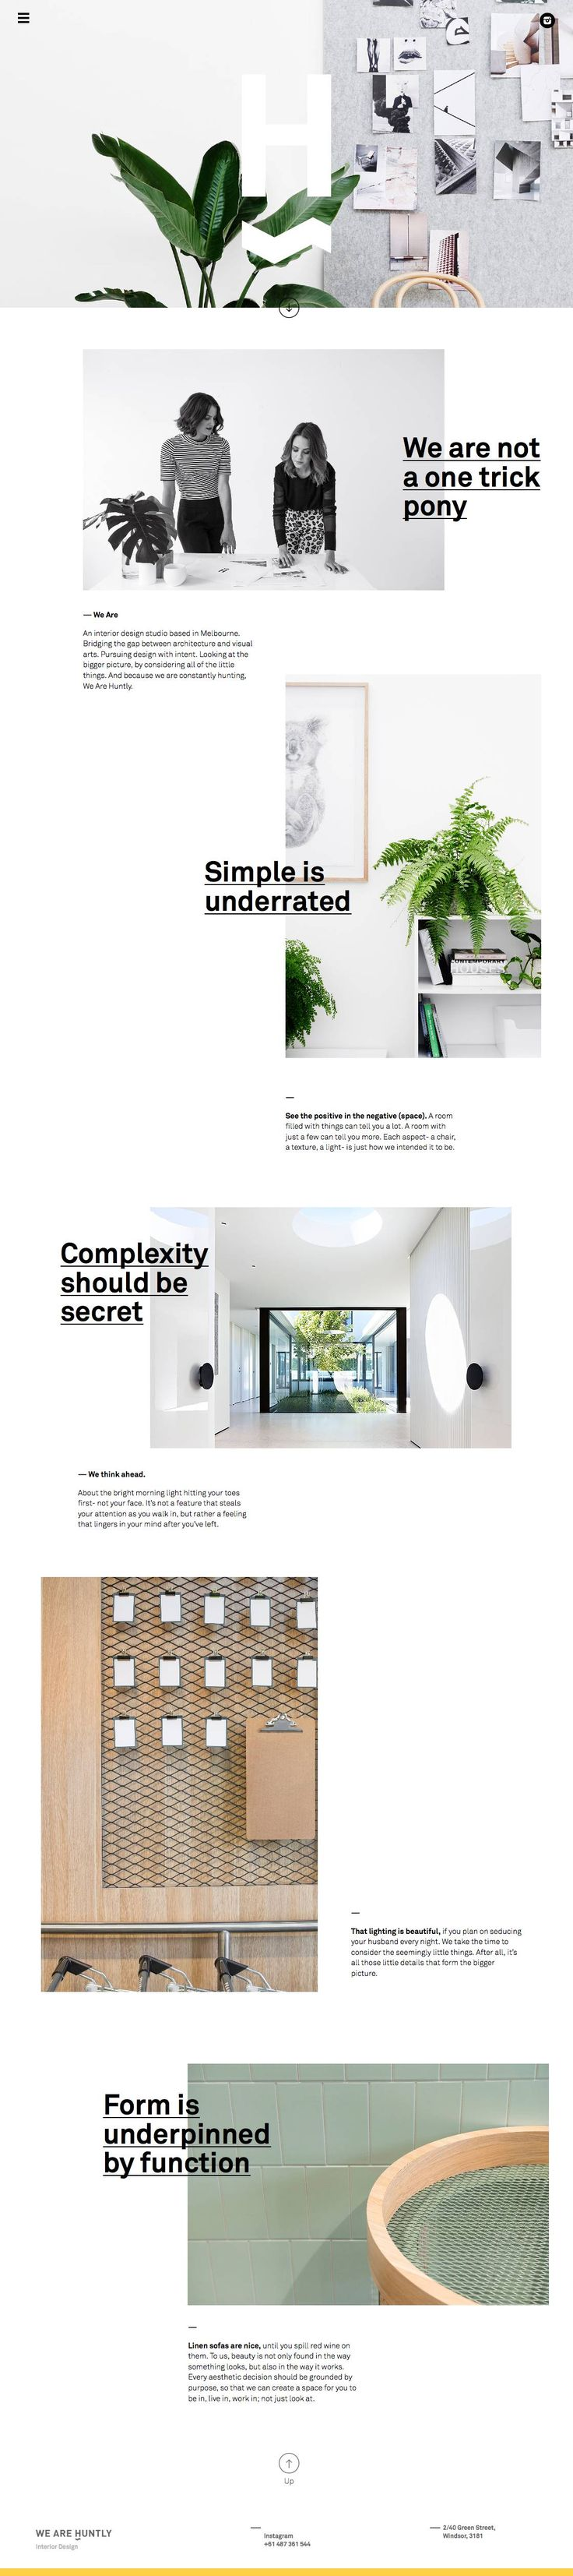 best 25 ios design ideas only on pinterest user interface huntly minimal creative design website leave lots of white space